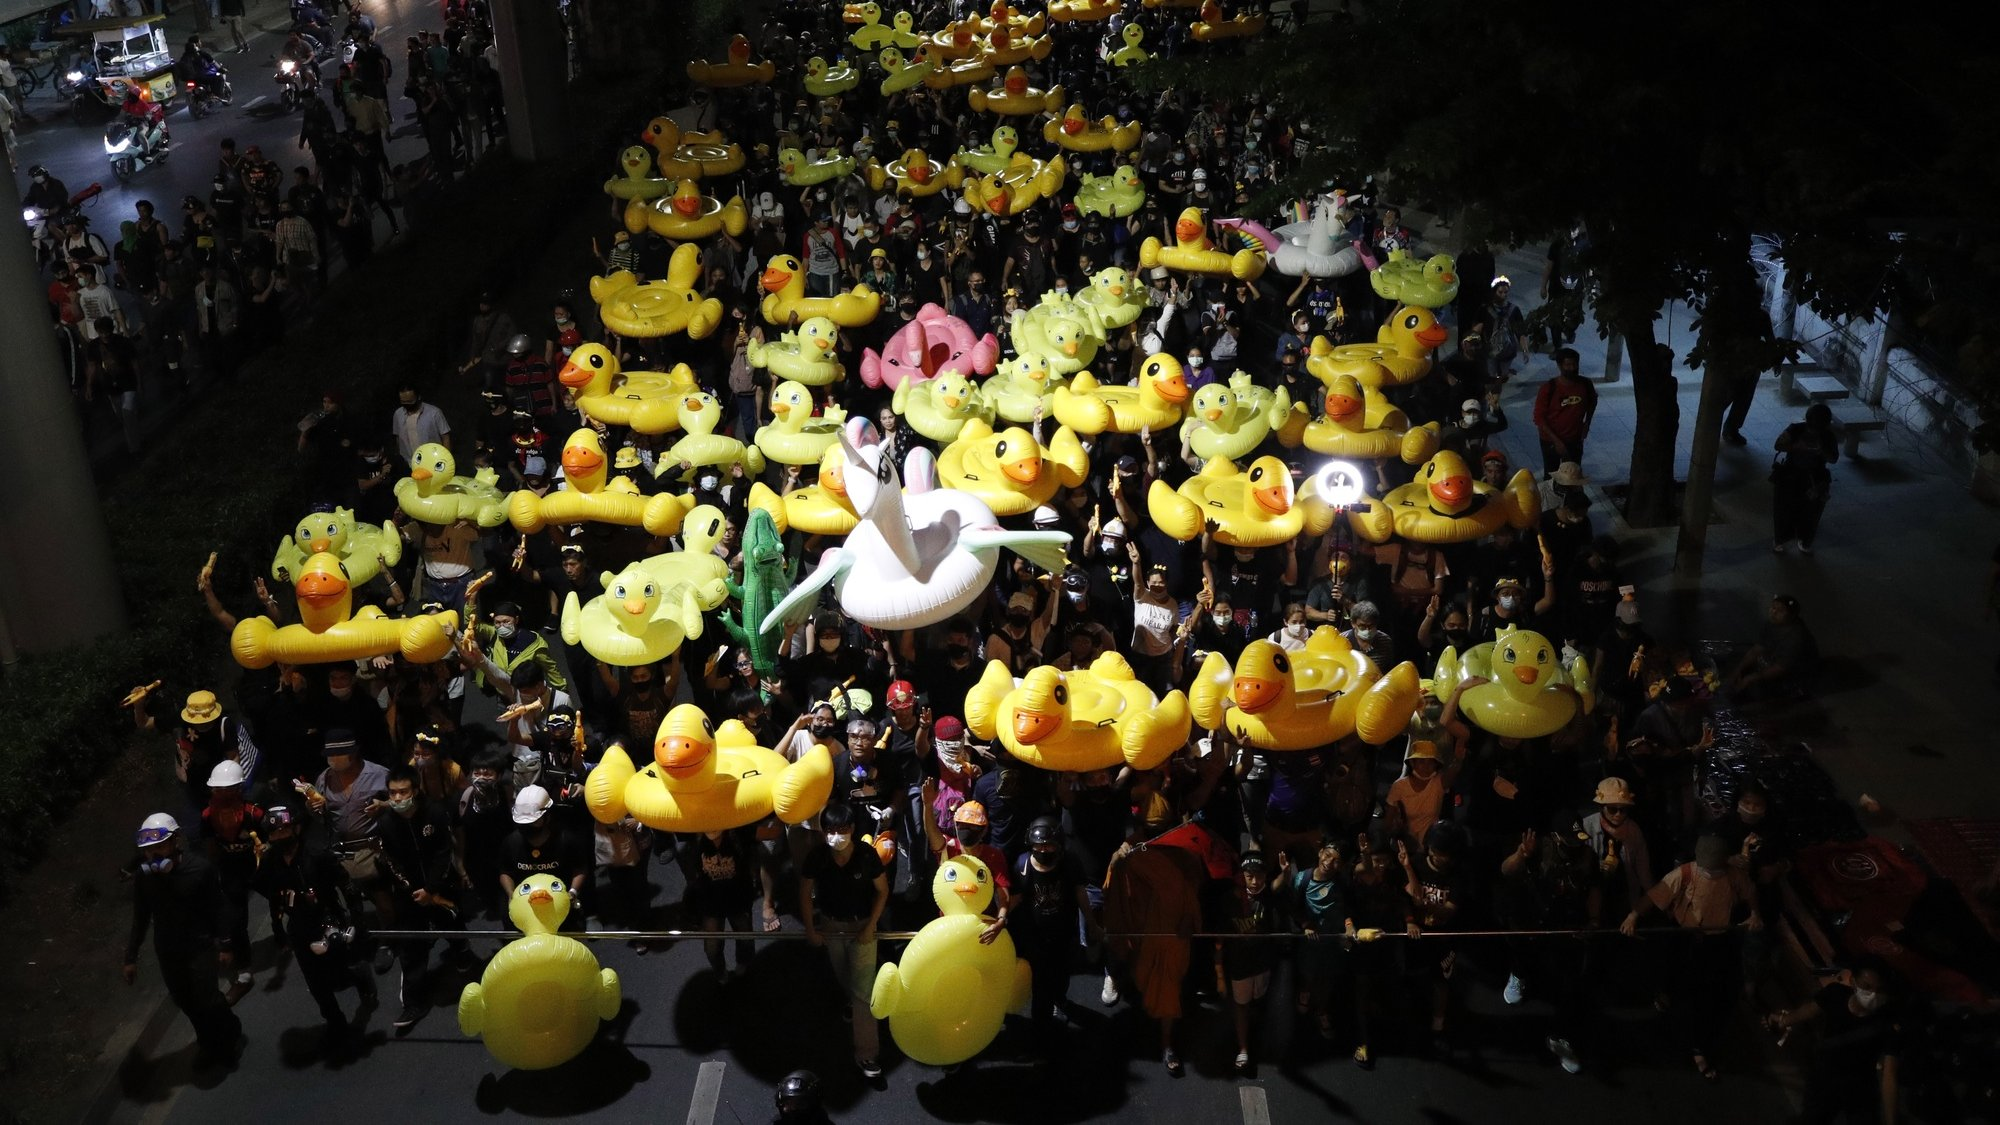 epaselect epa08850460 Anti-government protesters march with inflatable rubber ducks during a street protest calling for a political and monarchy reform at the 11th Infantry Regiment, the headquarters of the King's Guard regiment in Bangkok, Thailand, 29 November 2020. Thailand's politics intensified by months-long street protests calling for the political and monarchy reform and the resignation of the prime minister.  EPA/RUNGROJ YONGRIT